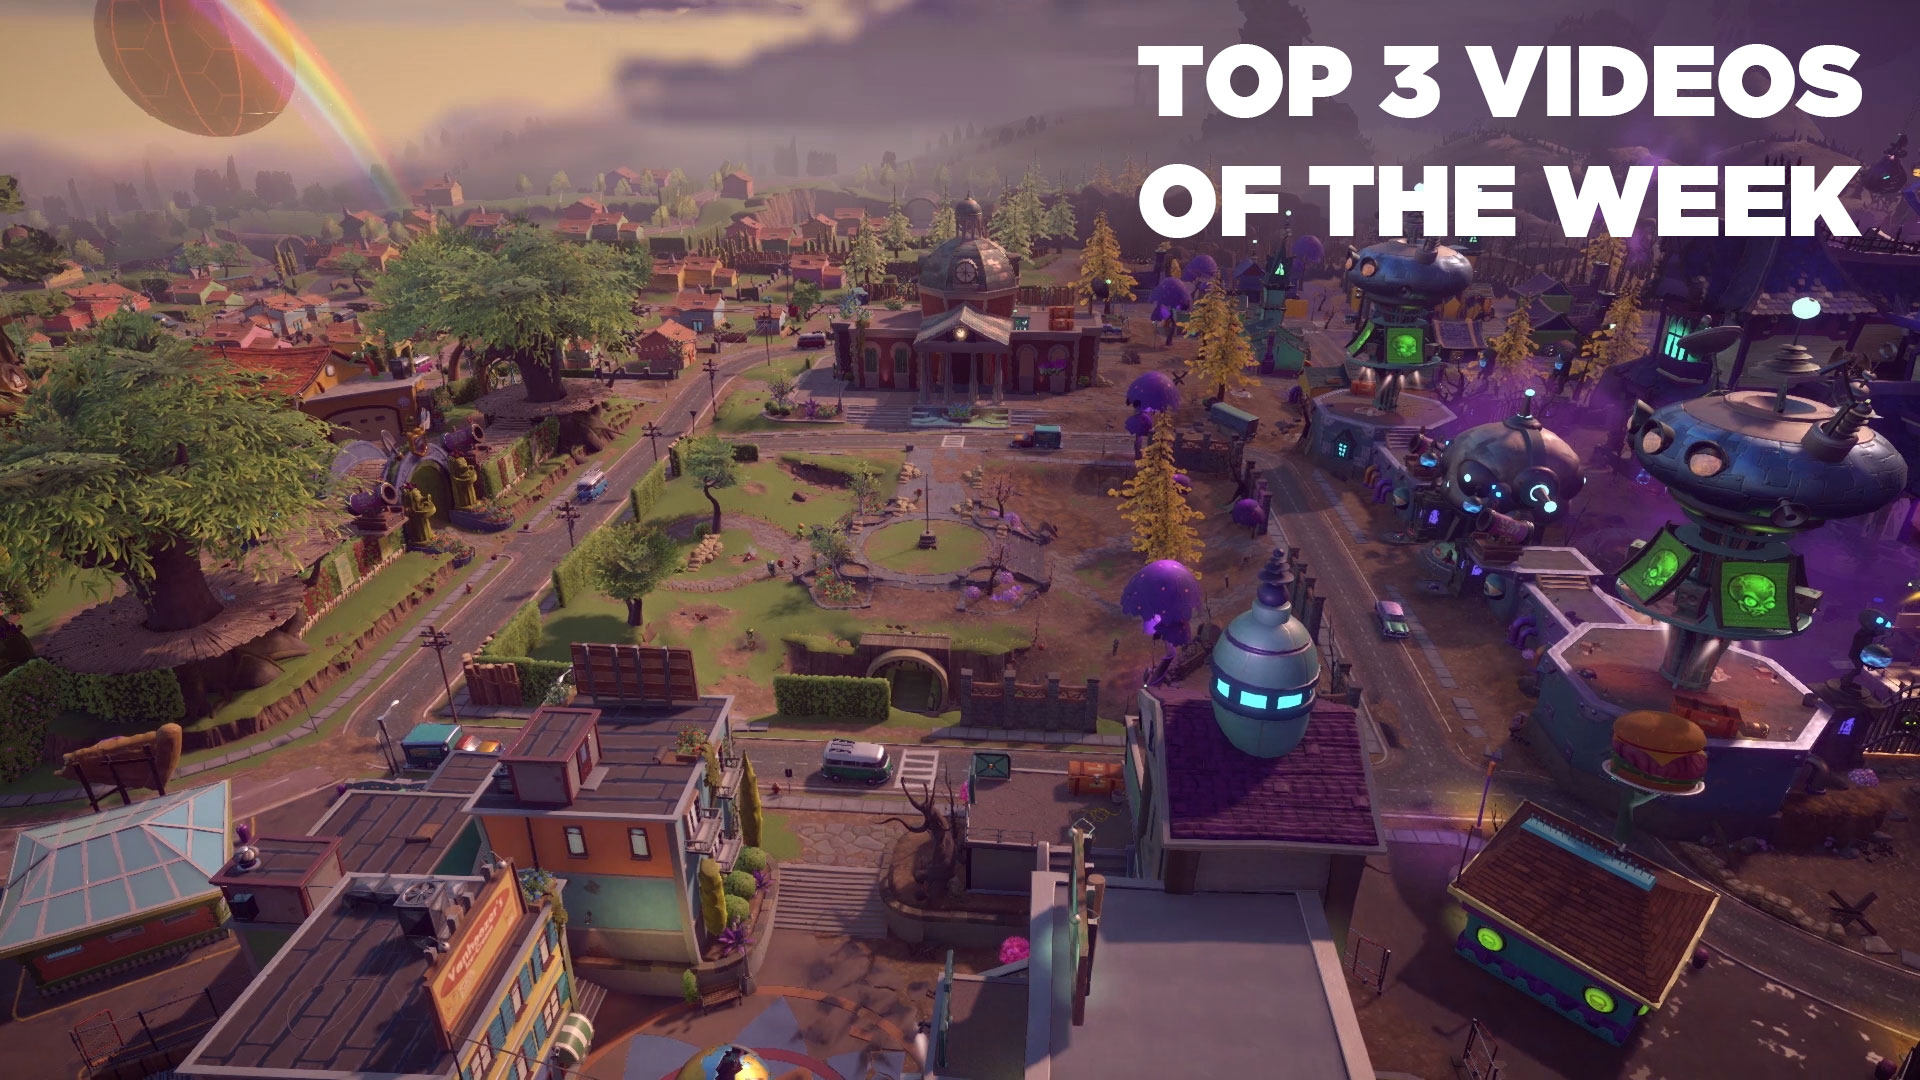 Top 3 plants vs zombies garden warfare 2 videos of the Plants vs zombies garden warfare 2 event calendar